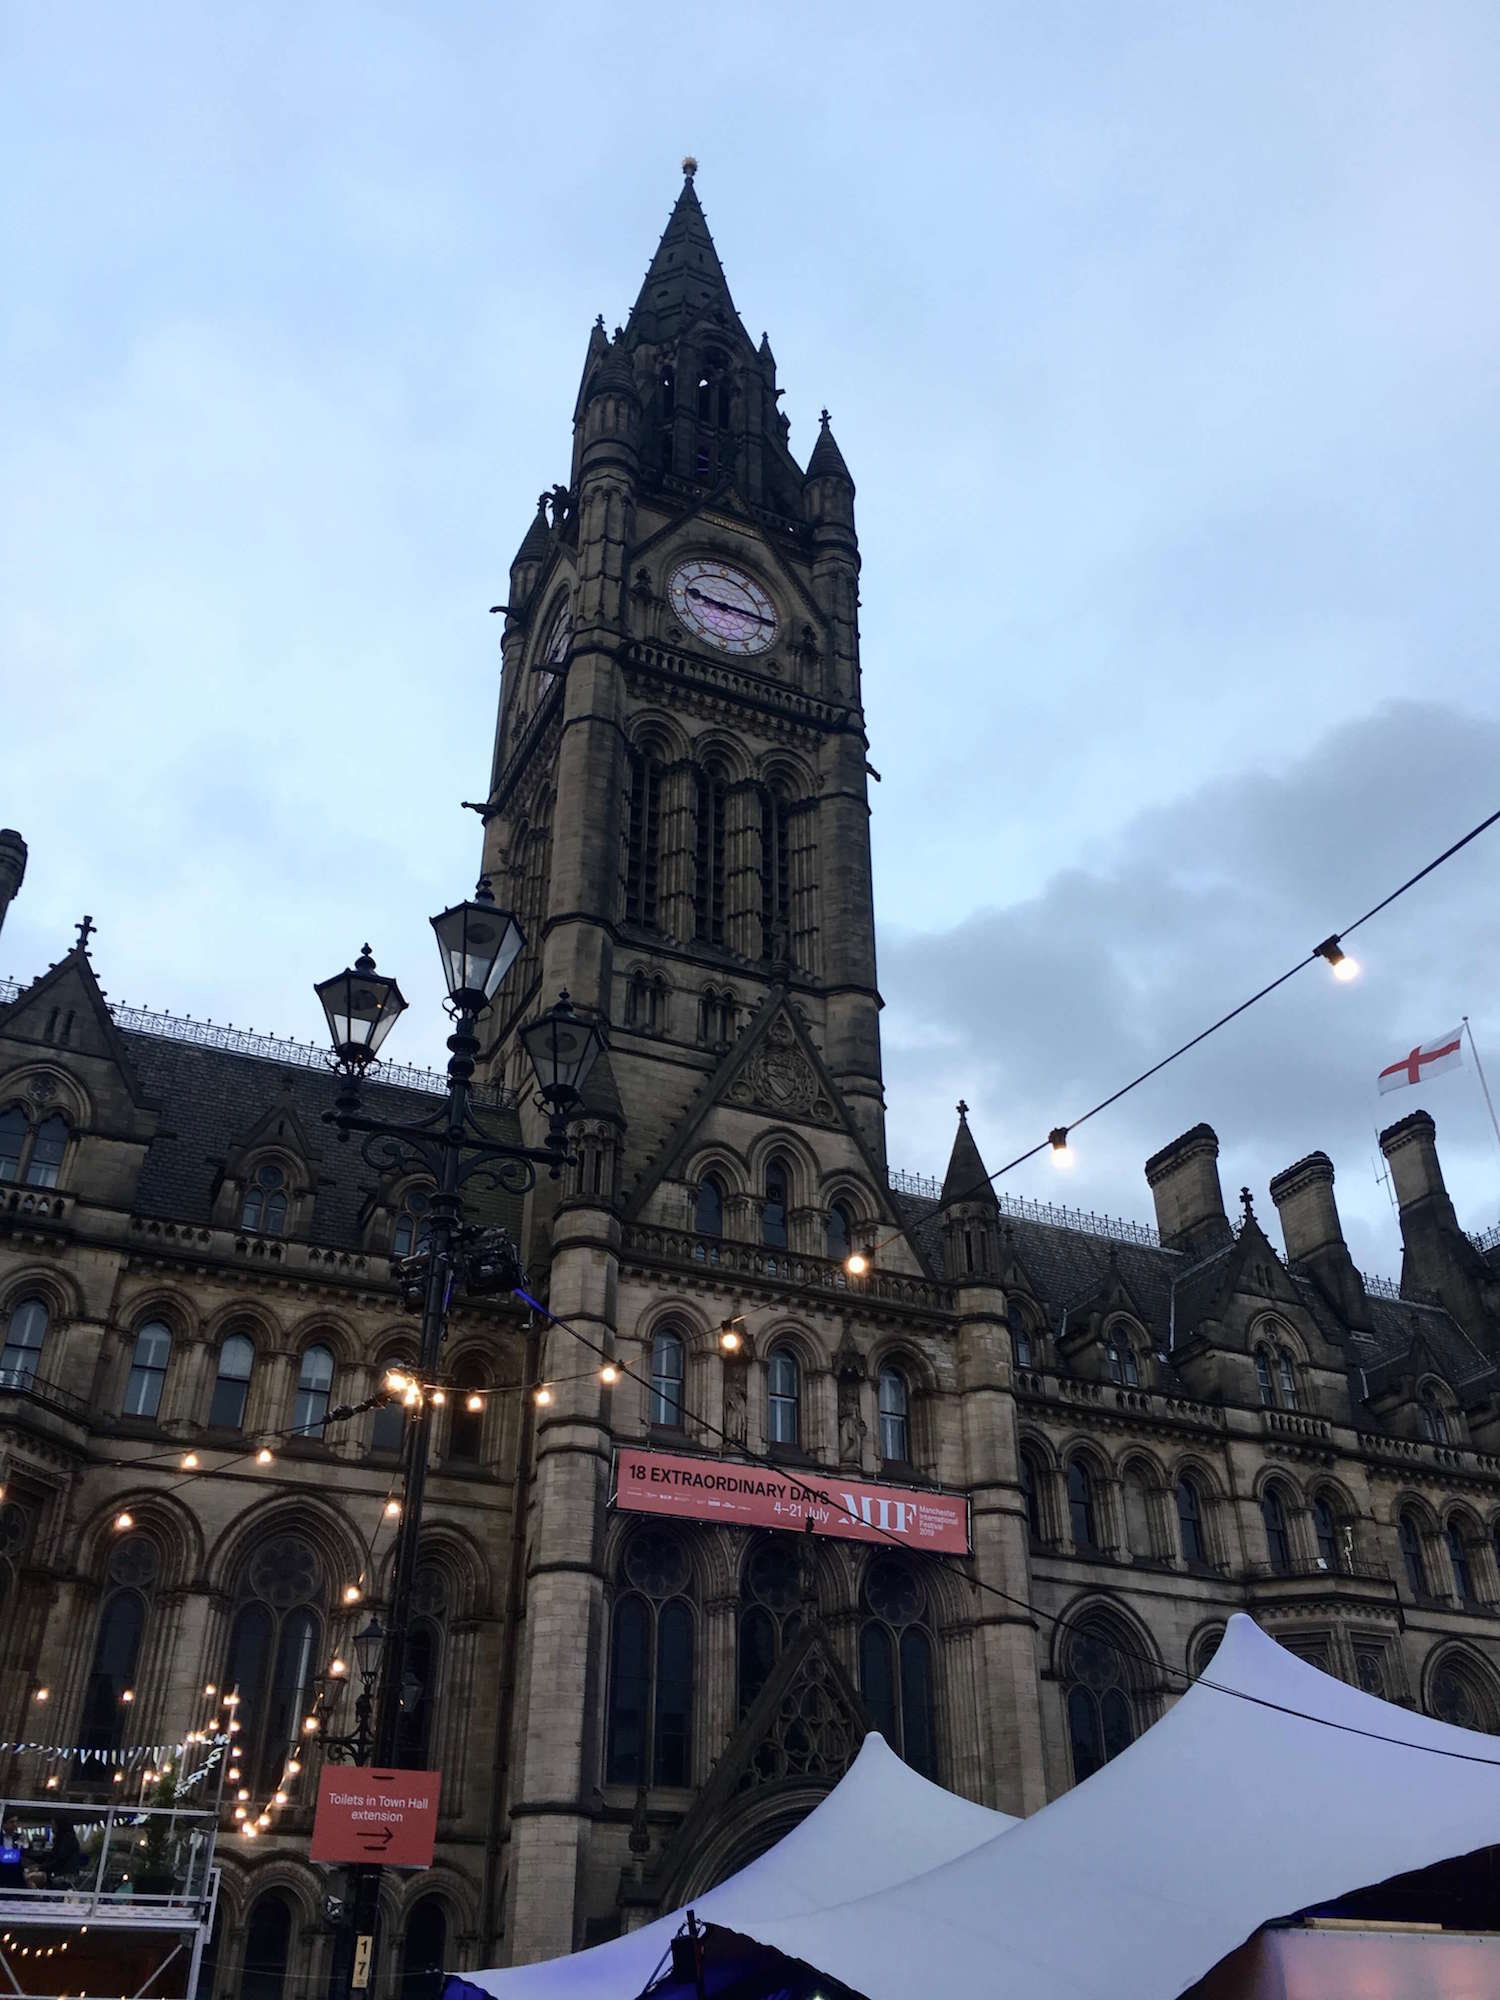 Manchester Town Hall at night with lights